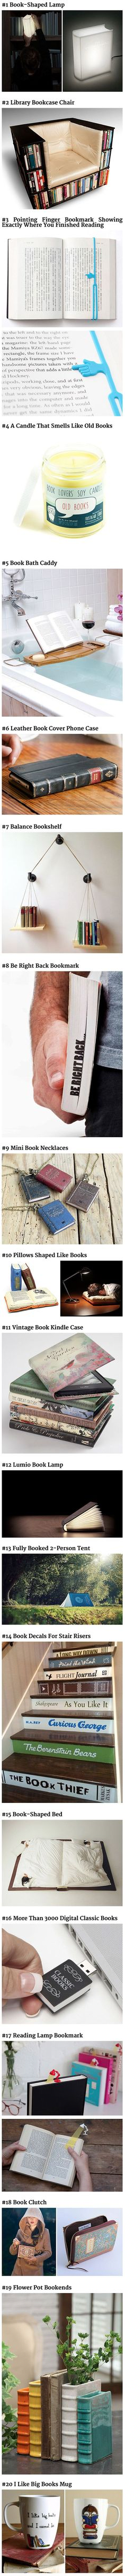 Here are some cool items that book fanatics would love. I think I want just about all of these!!!